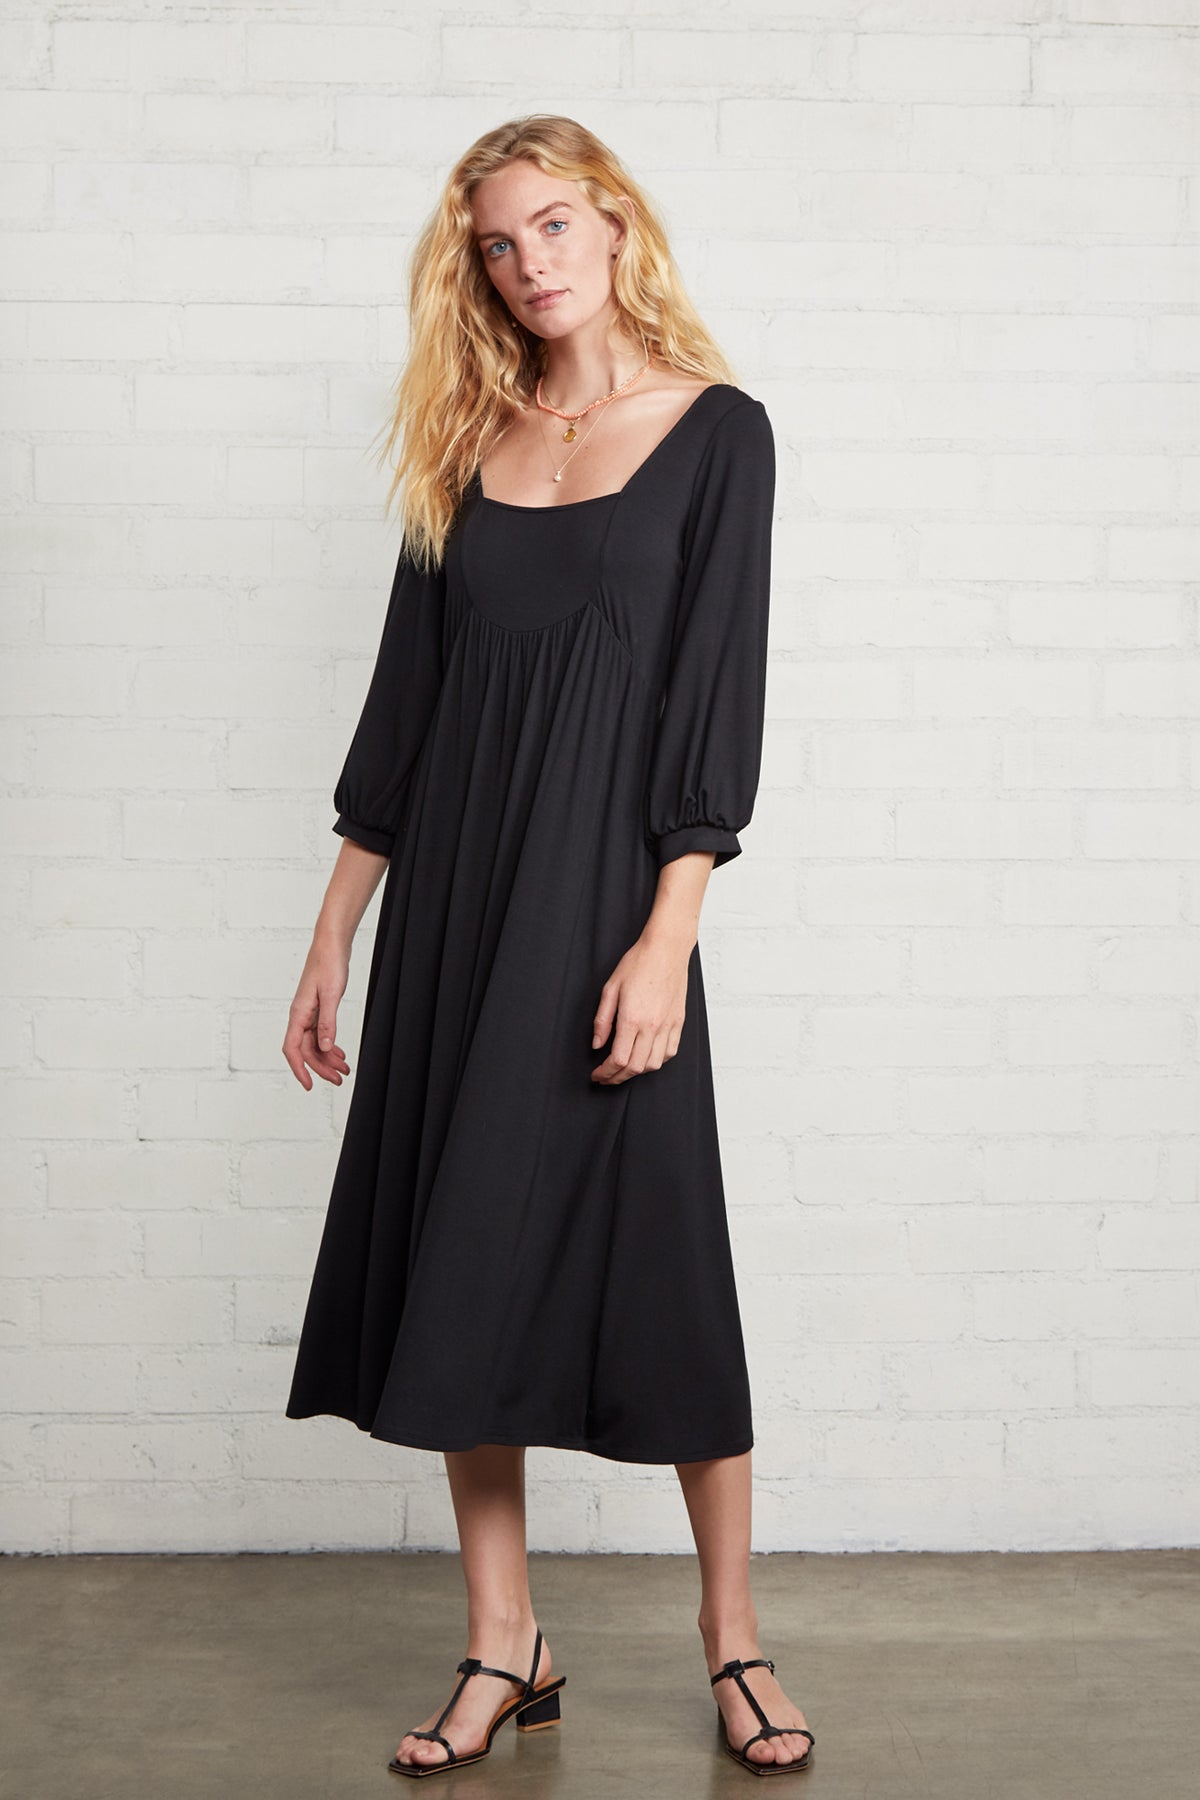 Raphaela Dress - Black